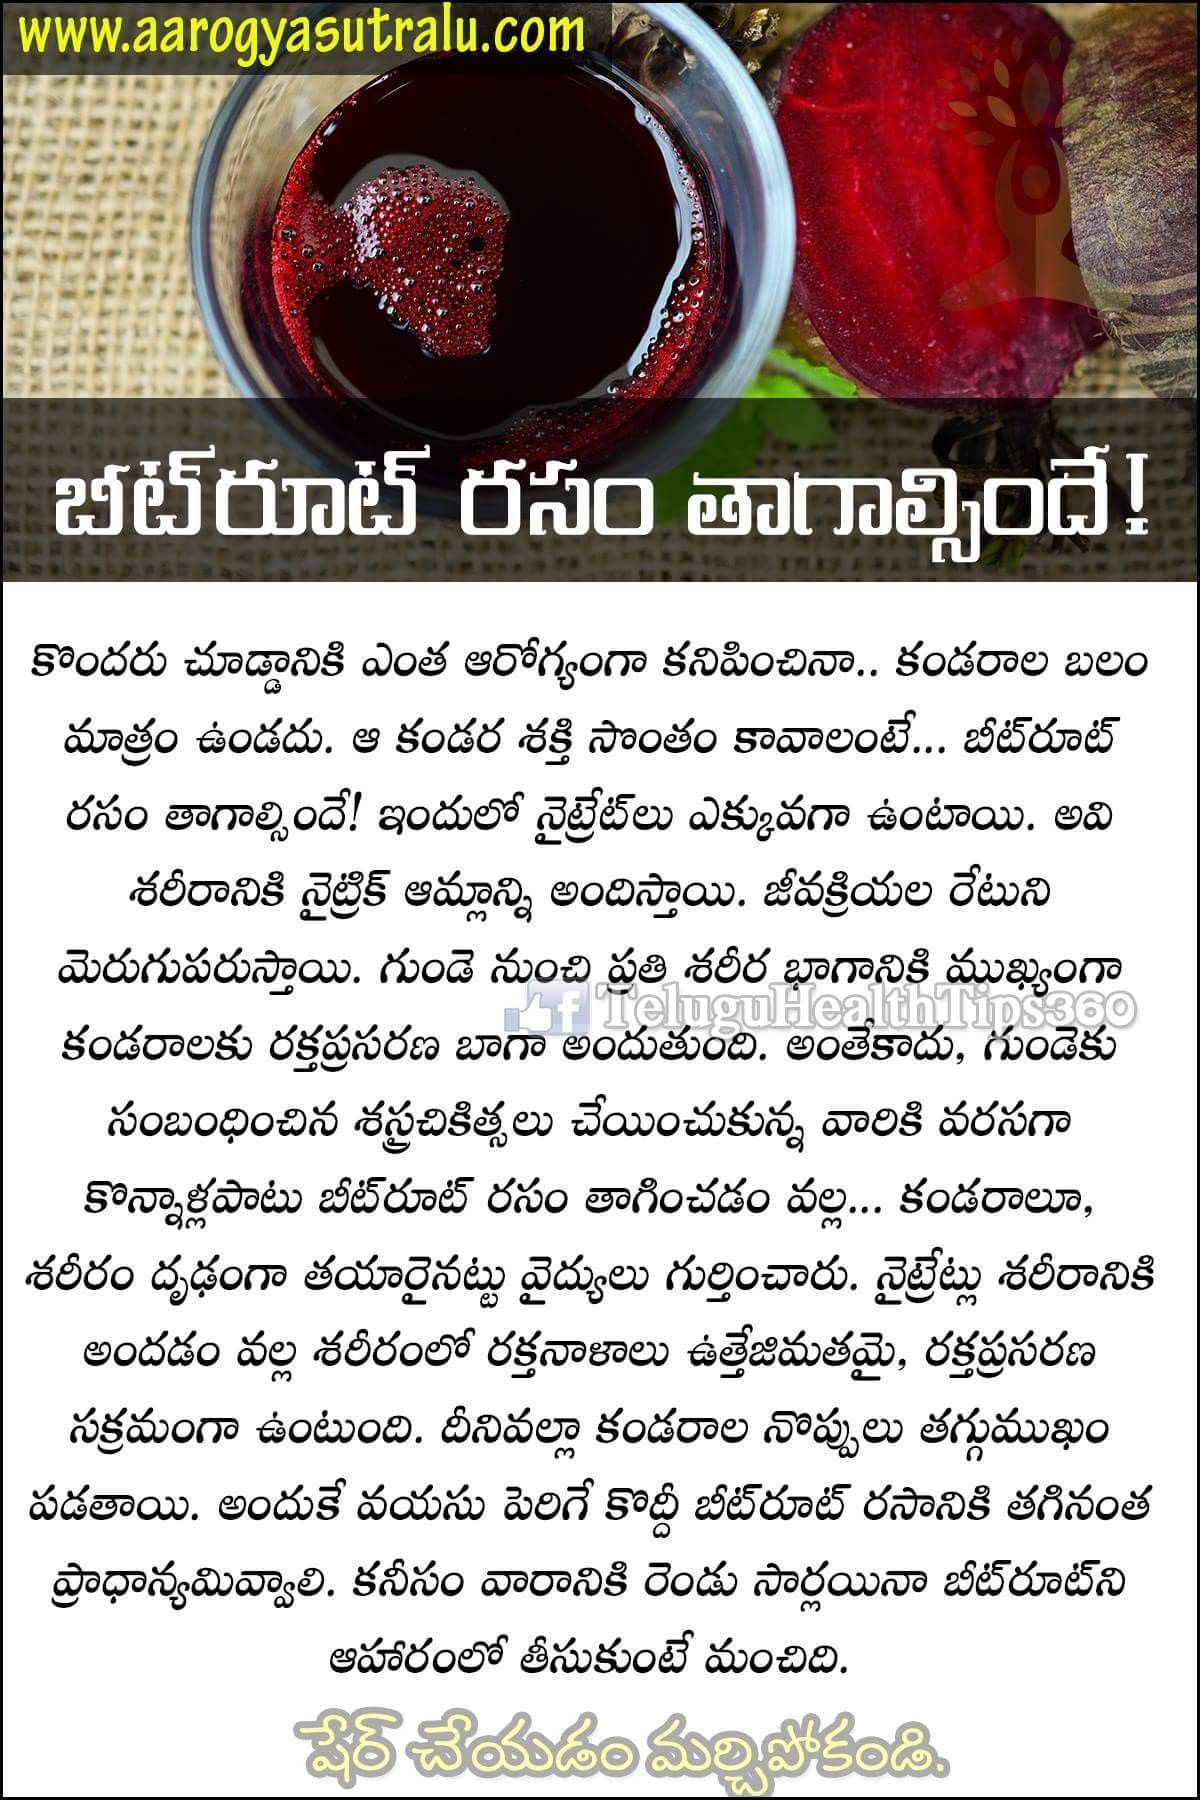 Pin By Lavanya Prasad On Health Tips In Telugu Health And Beauty Tips Good Health Tips Diy Health